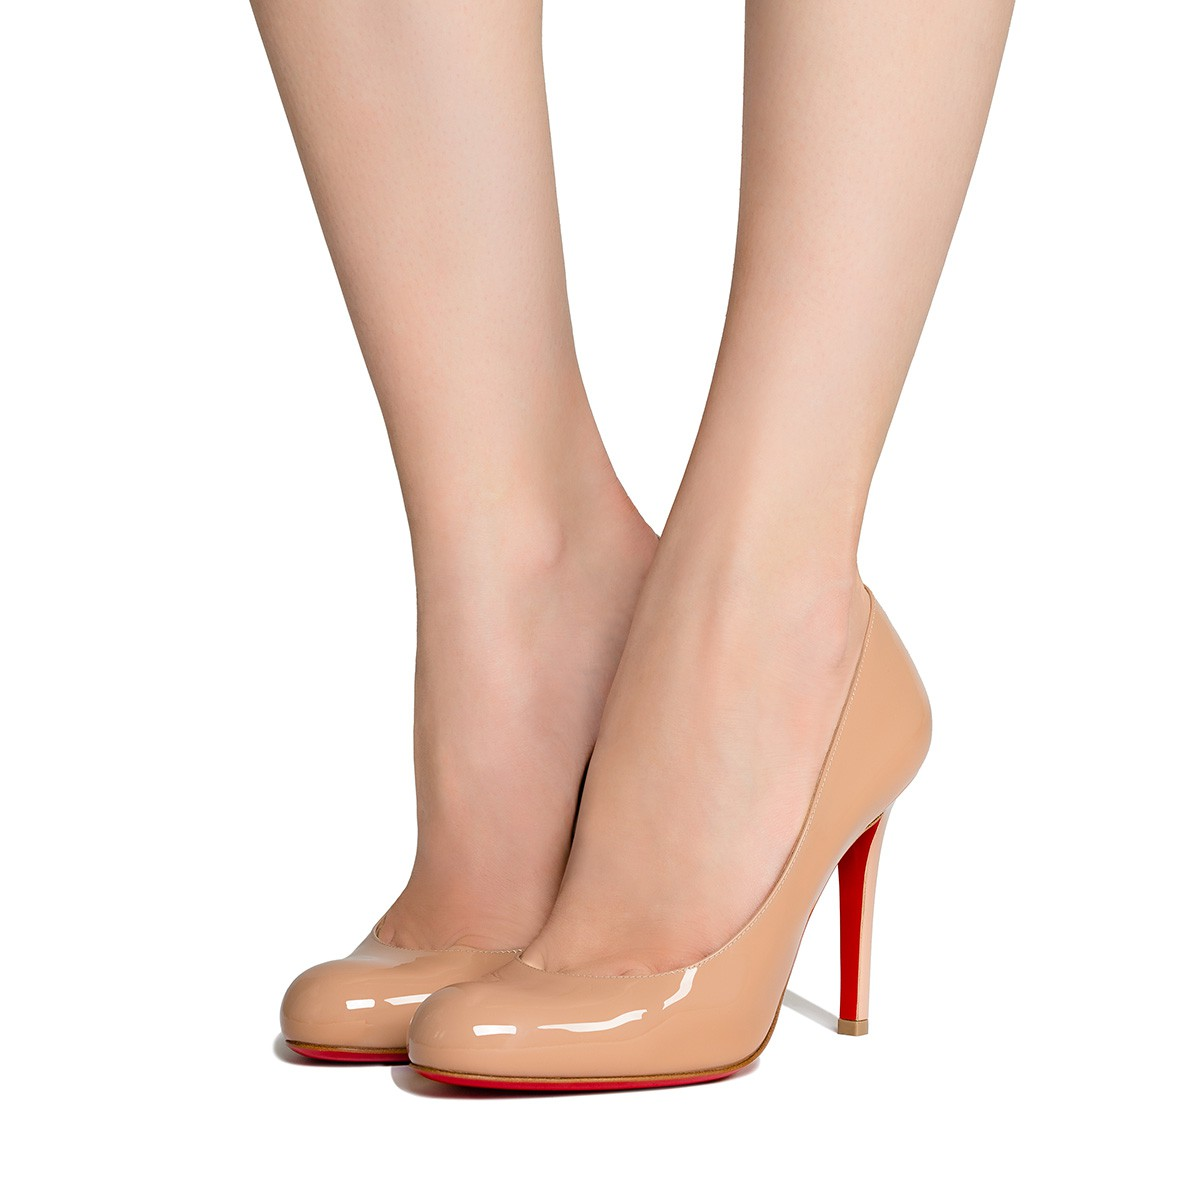 LOUBOUTIN 'NEW SIMPLE PUMPS' IN NUDE PATENT LEATHER, SIZE 37,5